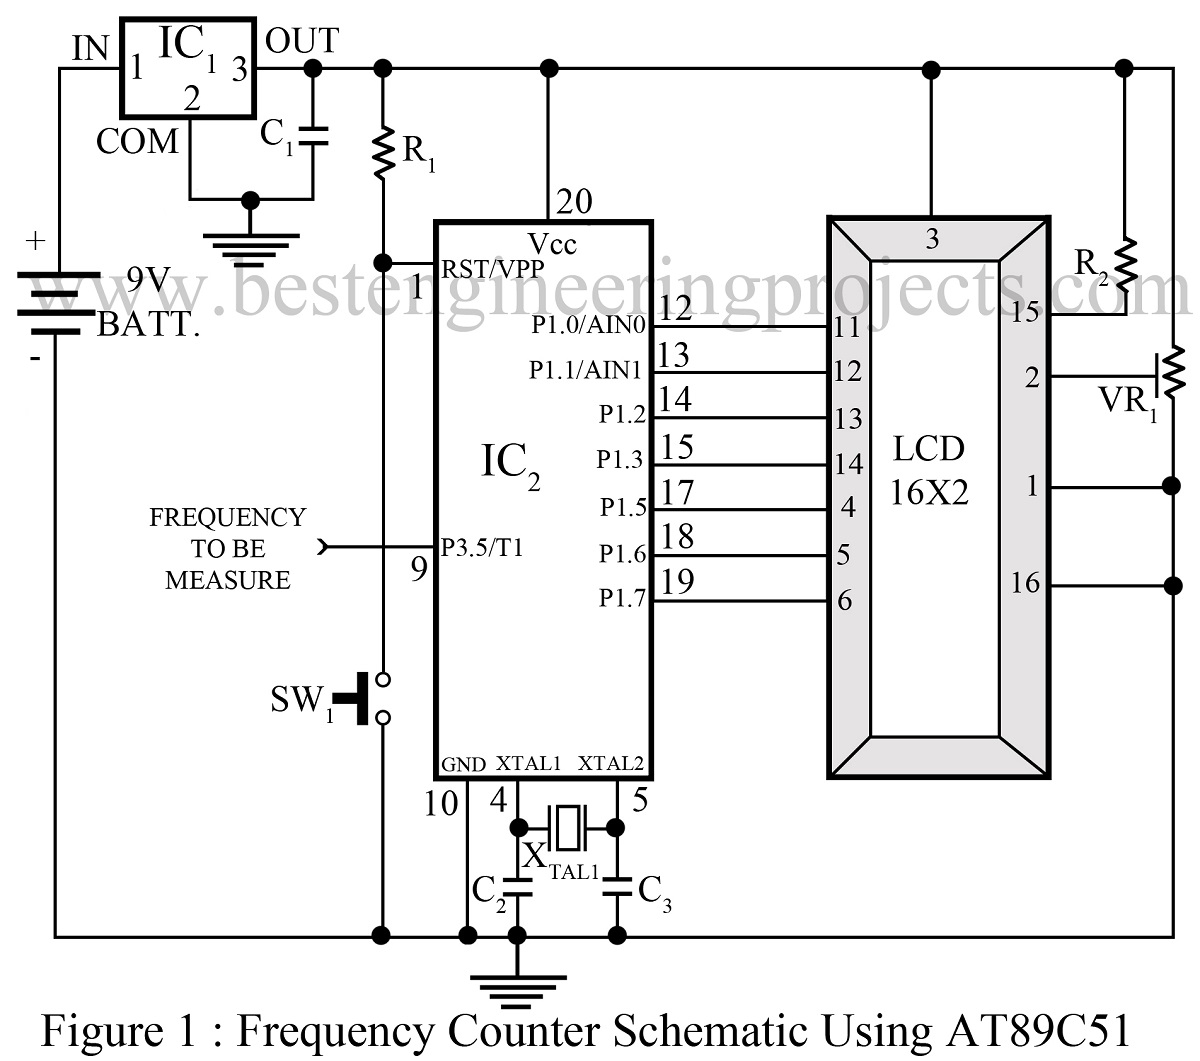 Frequency Counter Schematic Using Microcontroller At89c51 Best Digital Long Time Delay Circuit Amplifiercircuit Diagram Engineering Projects